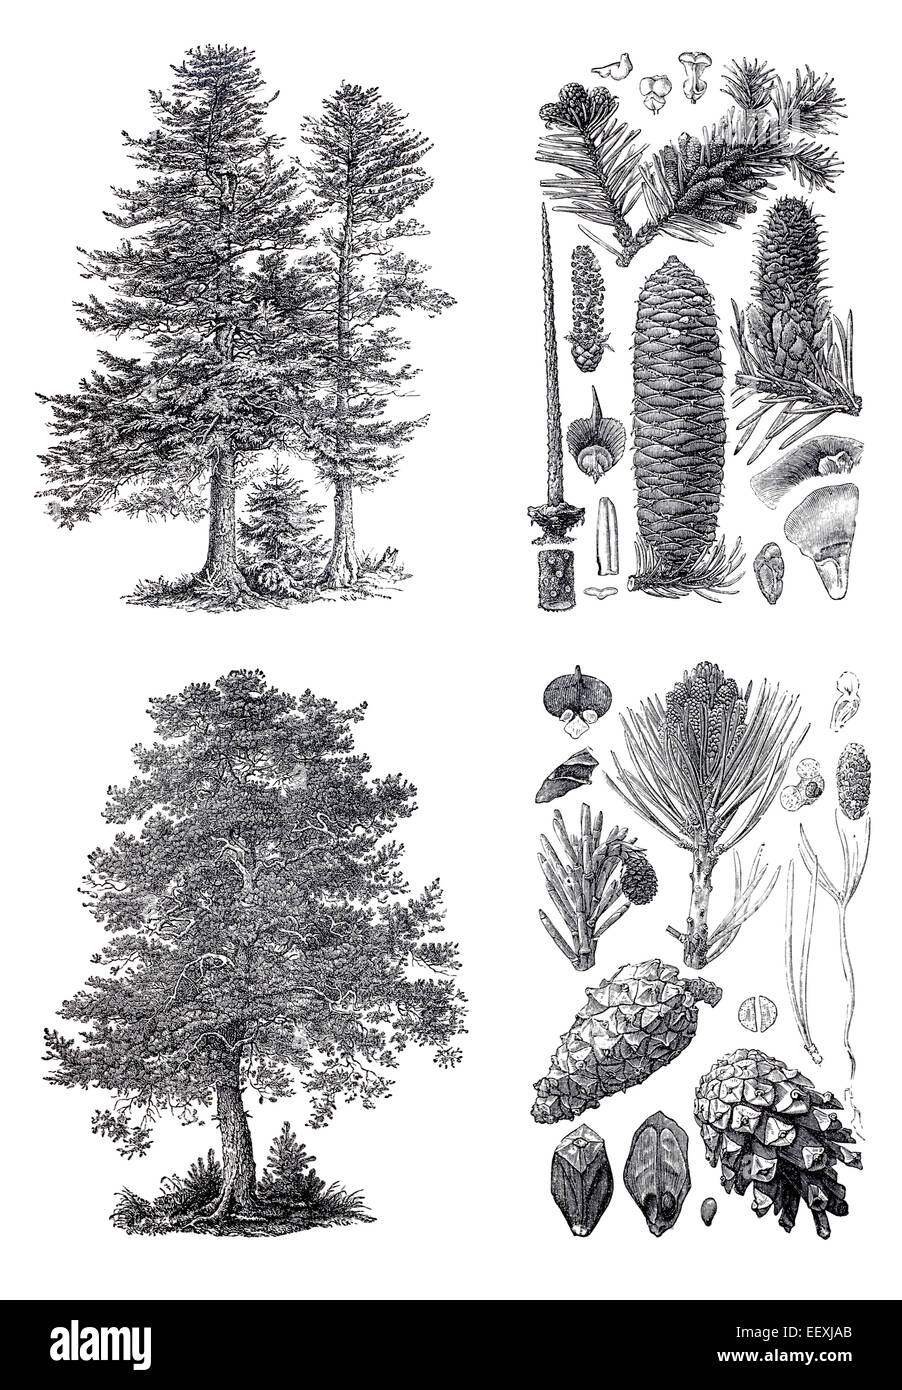 Retro vintage silhouettes of a european pine and siberian fir trees retro vintage silhouettes of a european pine and siberian fir trees an engraving illustration from the public domain dictionary altavistaventures Images